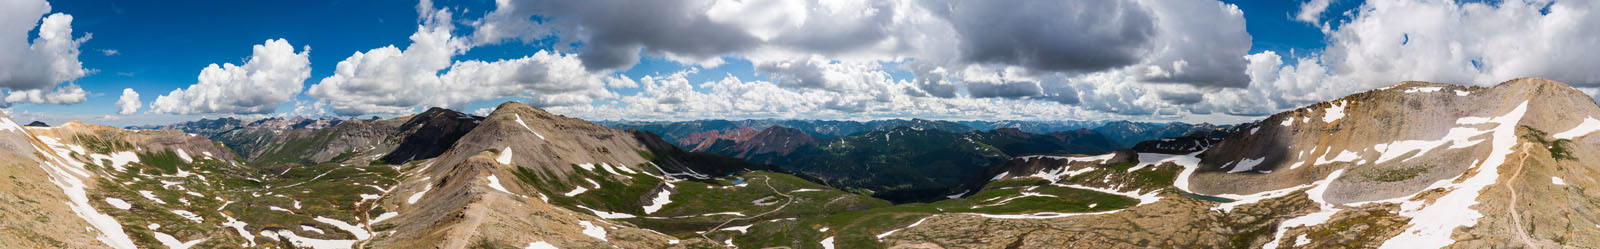 Pano taken from up on top of Black Bear Pass